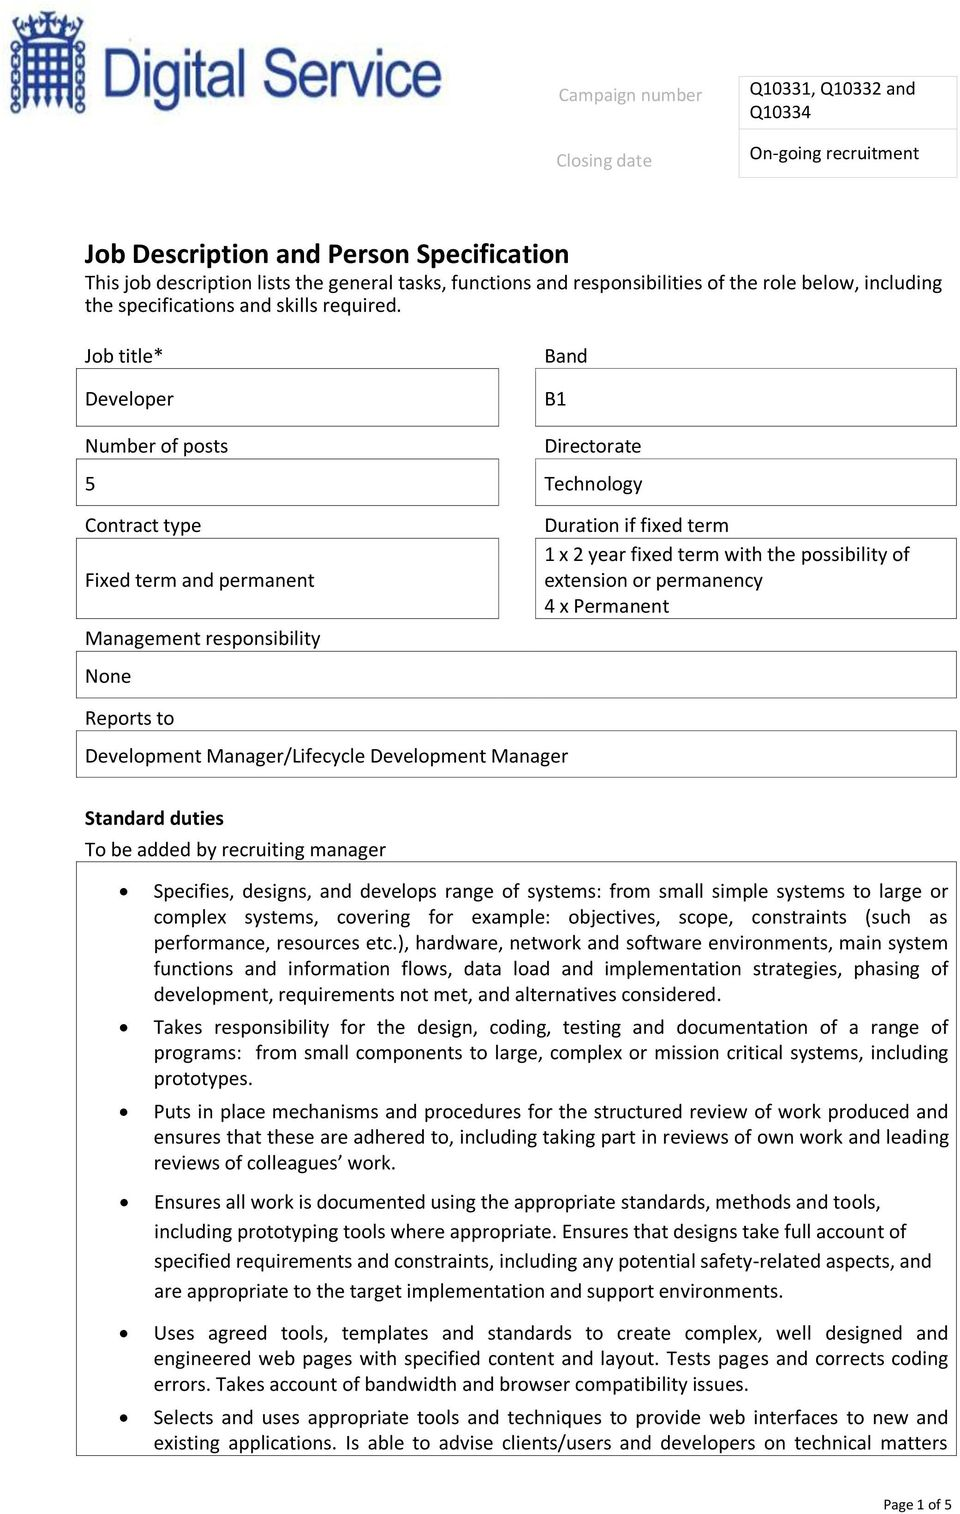 Job title* Developer Band B1 Number of posts Directorate 5 Technology Contract type Fixed term and permanent Management responsibility None Duration if fixed term 1 x 2 year fixed term with the